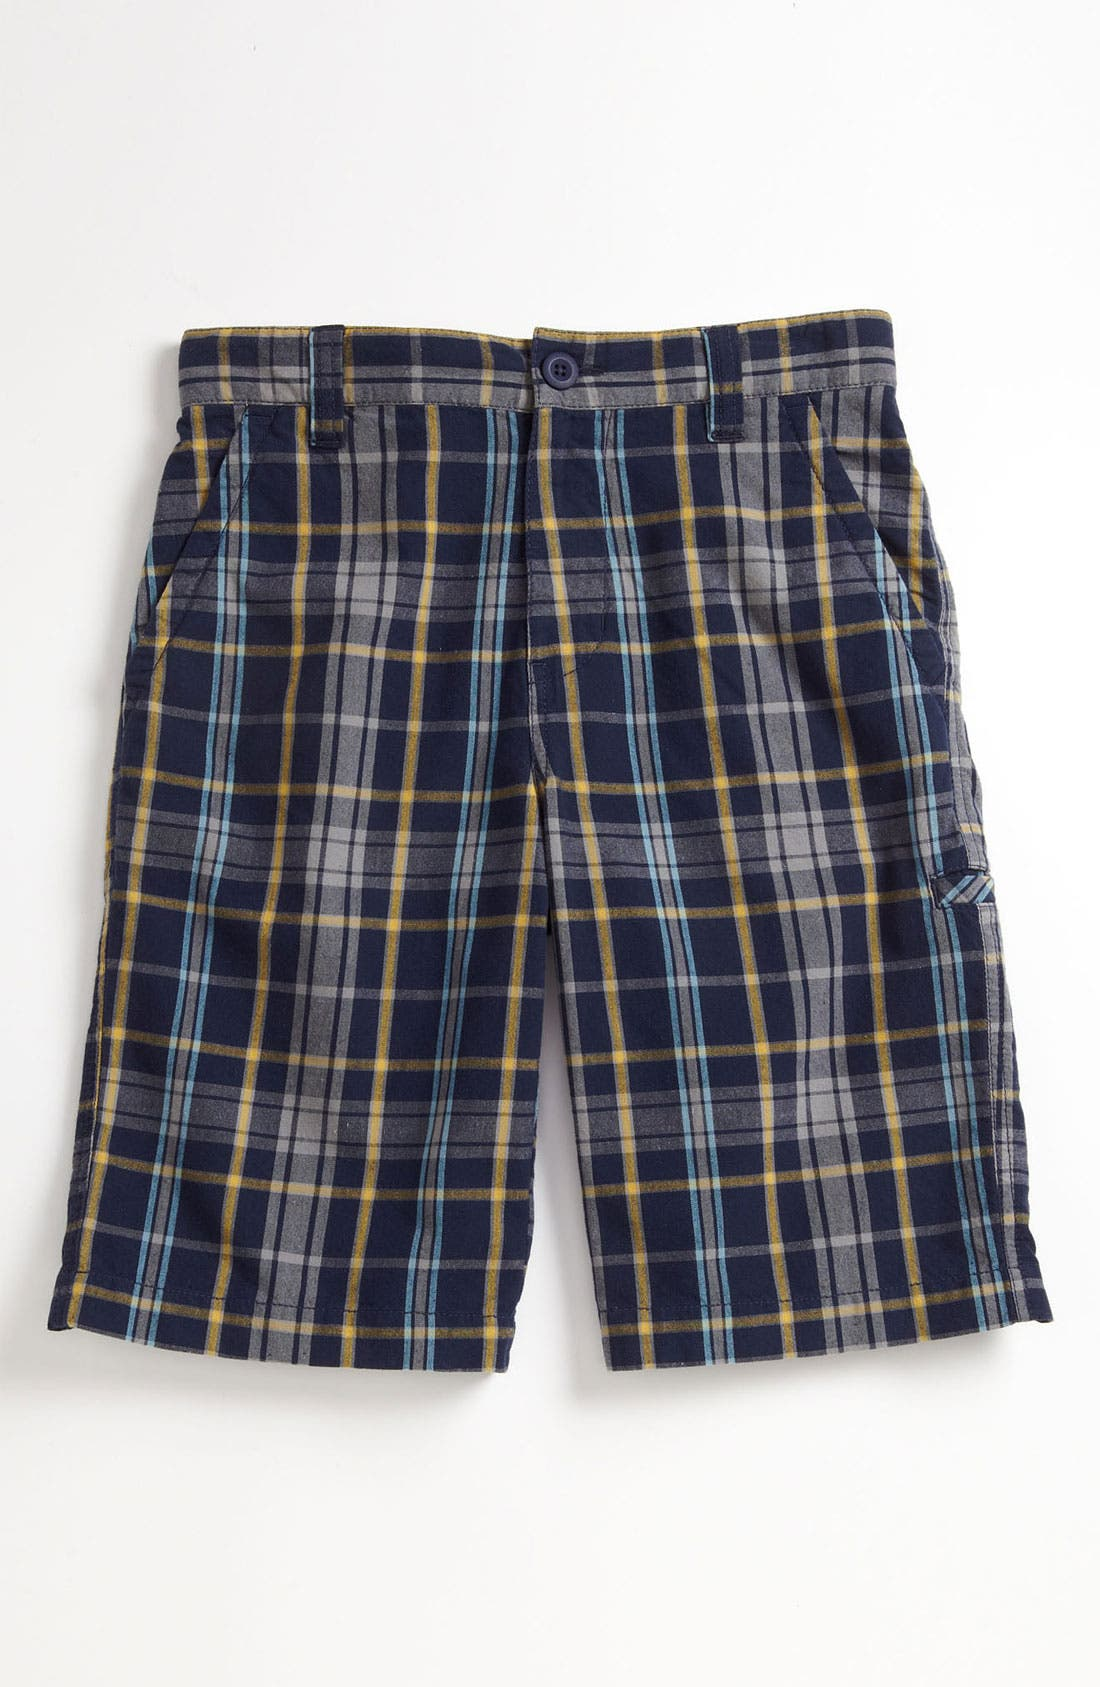 Alternate Image 1 Selected - Tucker + Tate 'Trevor' Plaid Shorts (Little Boys & Big Boys)